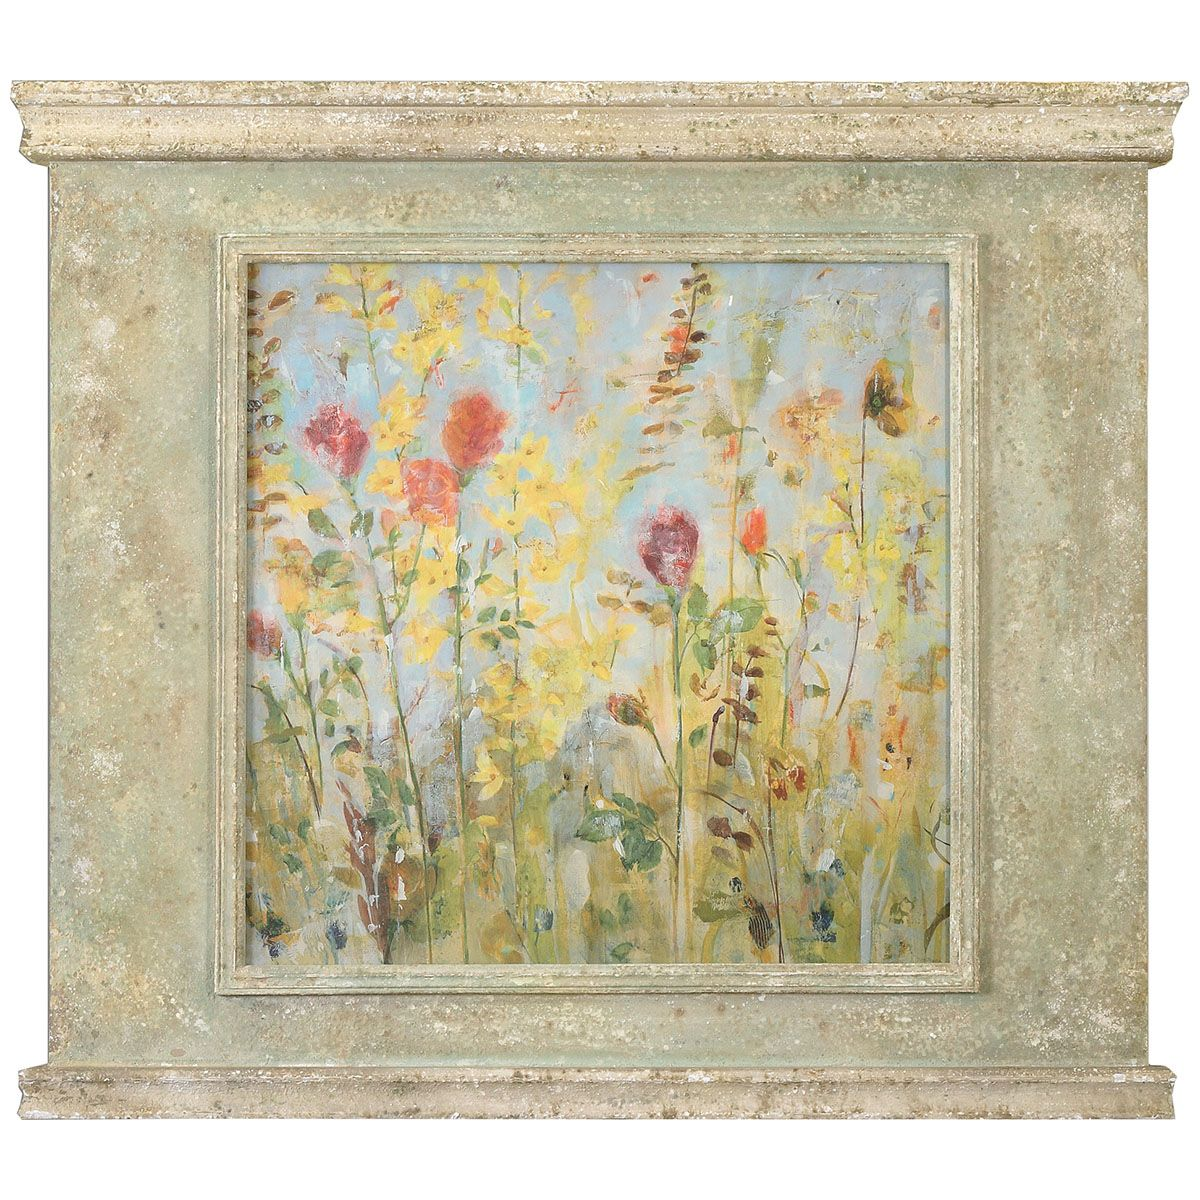 Uttermost Spring Melody Wall Art 56052 | Uttermost | Pinterest | Walls